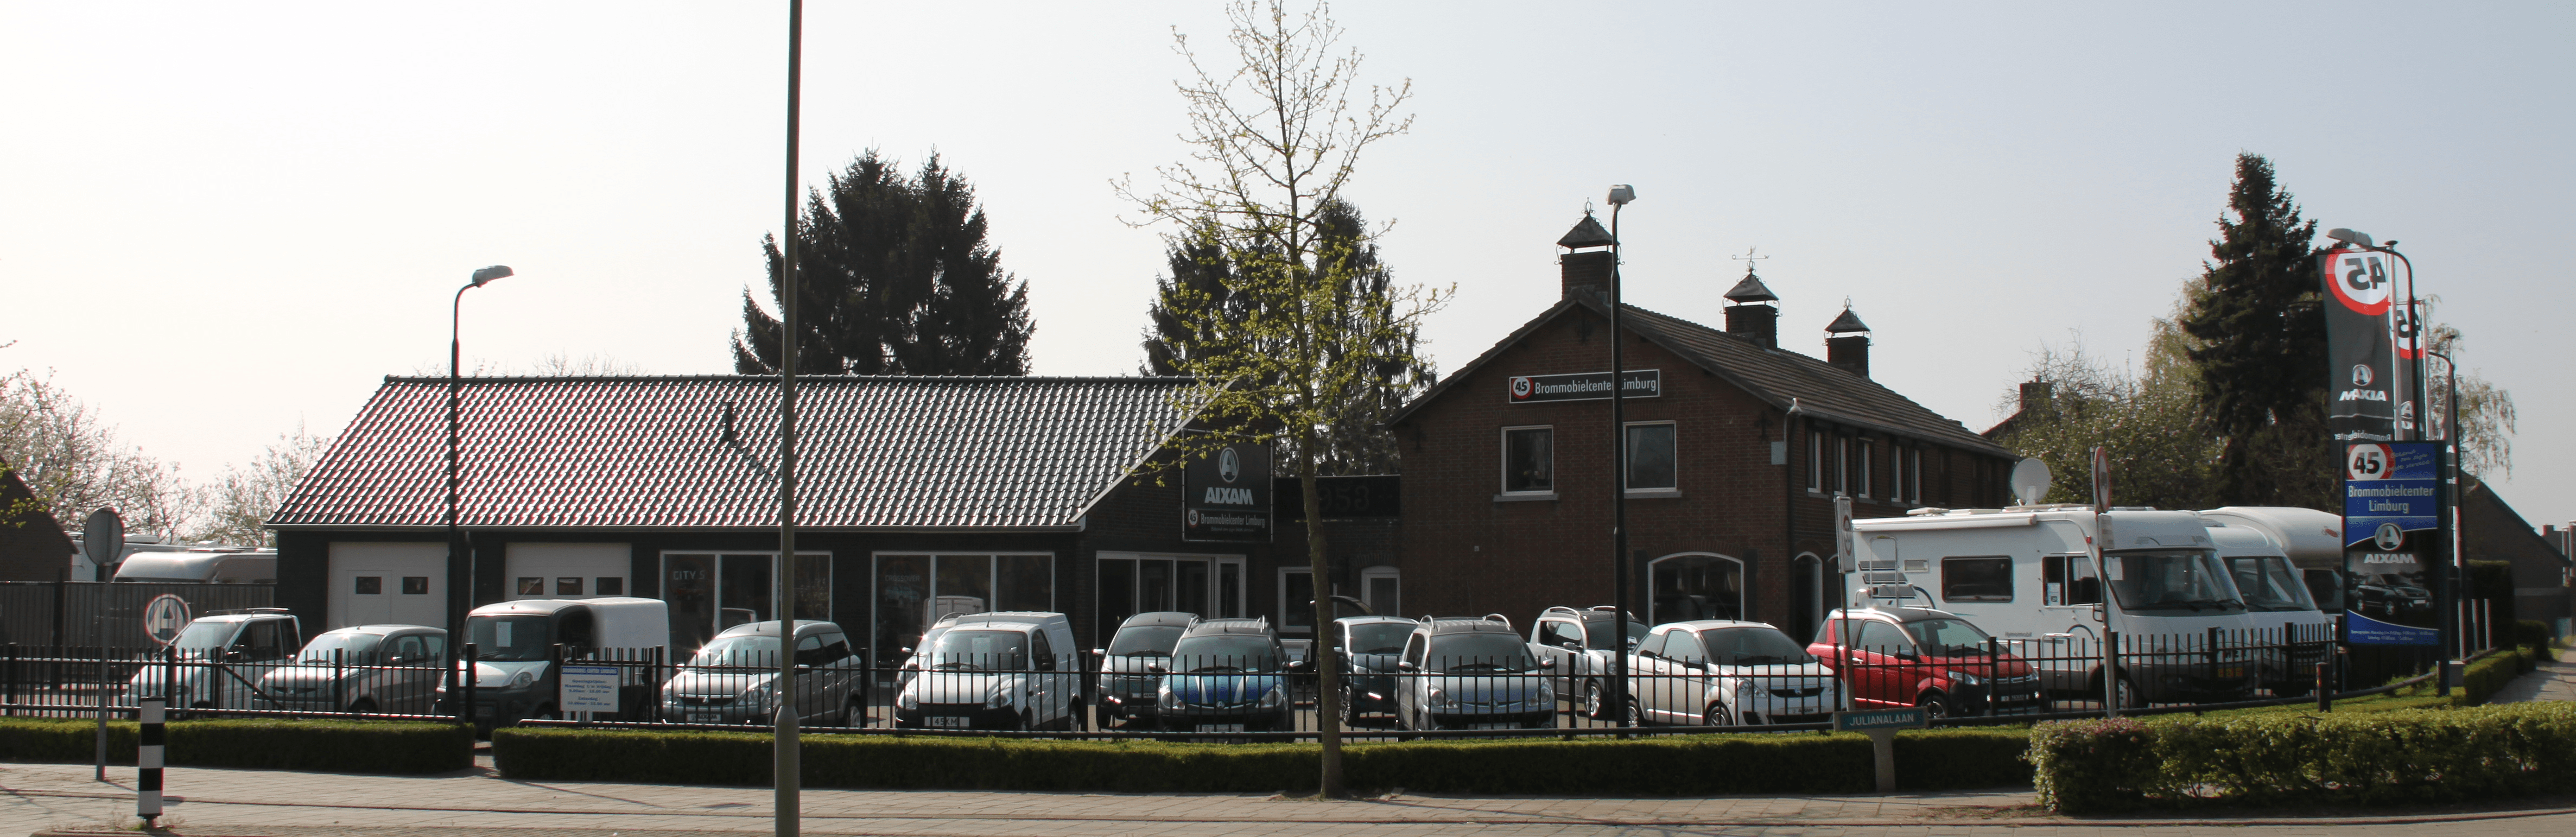 brommobiel center showroom Brabant en Limburg - Melick